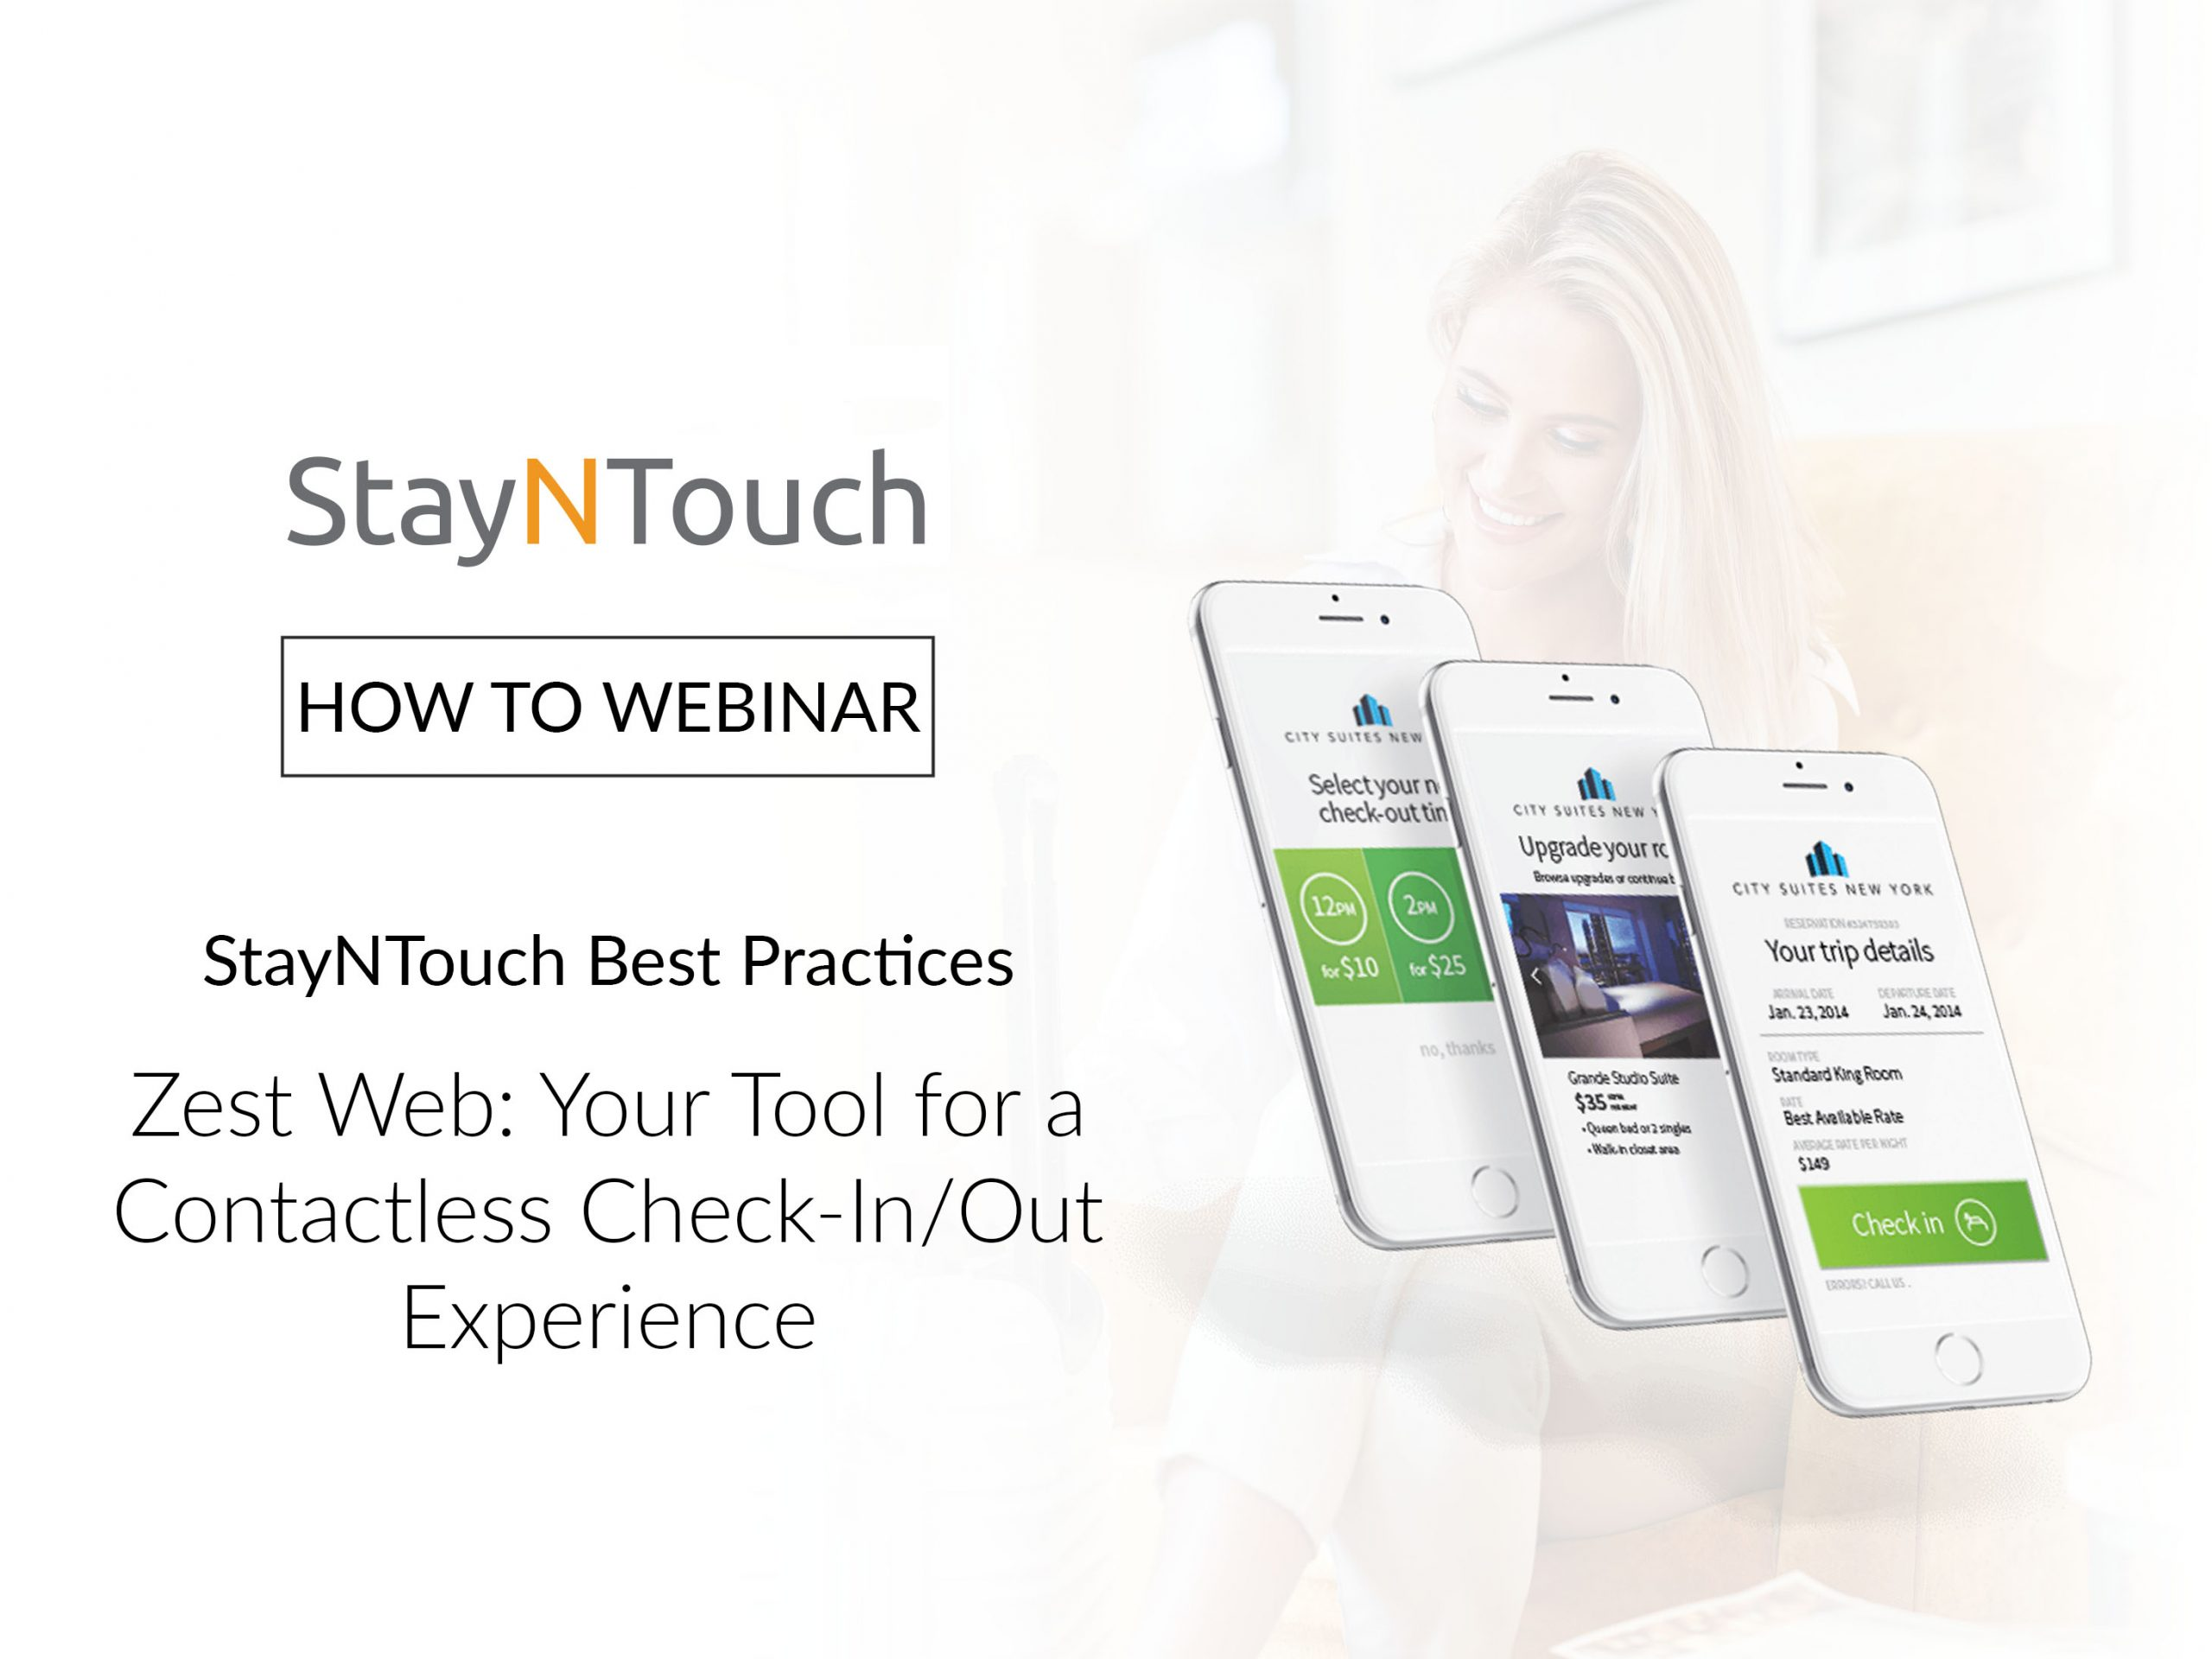 StayNTouch Best Practices Zest Web: Your Tool for a Contactless Check-In/Out Experience